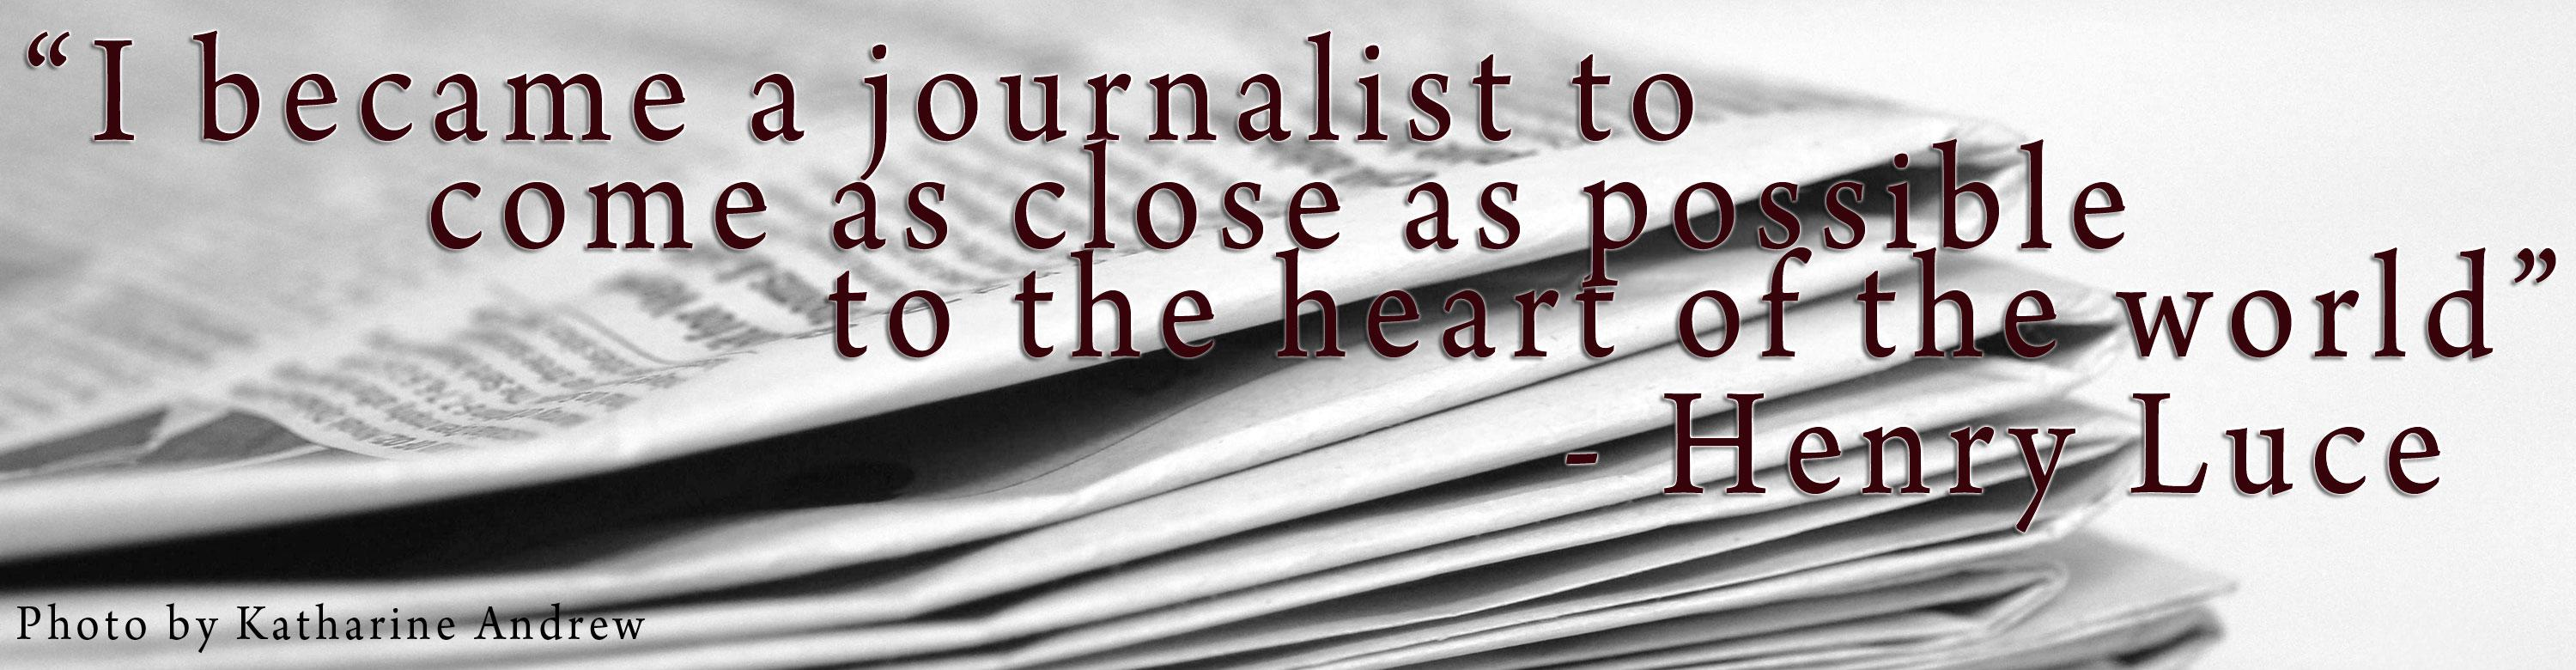 A young journalist reflects on the risks taken by professional news reporters